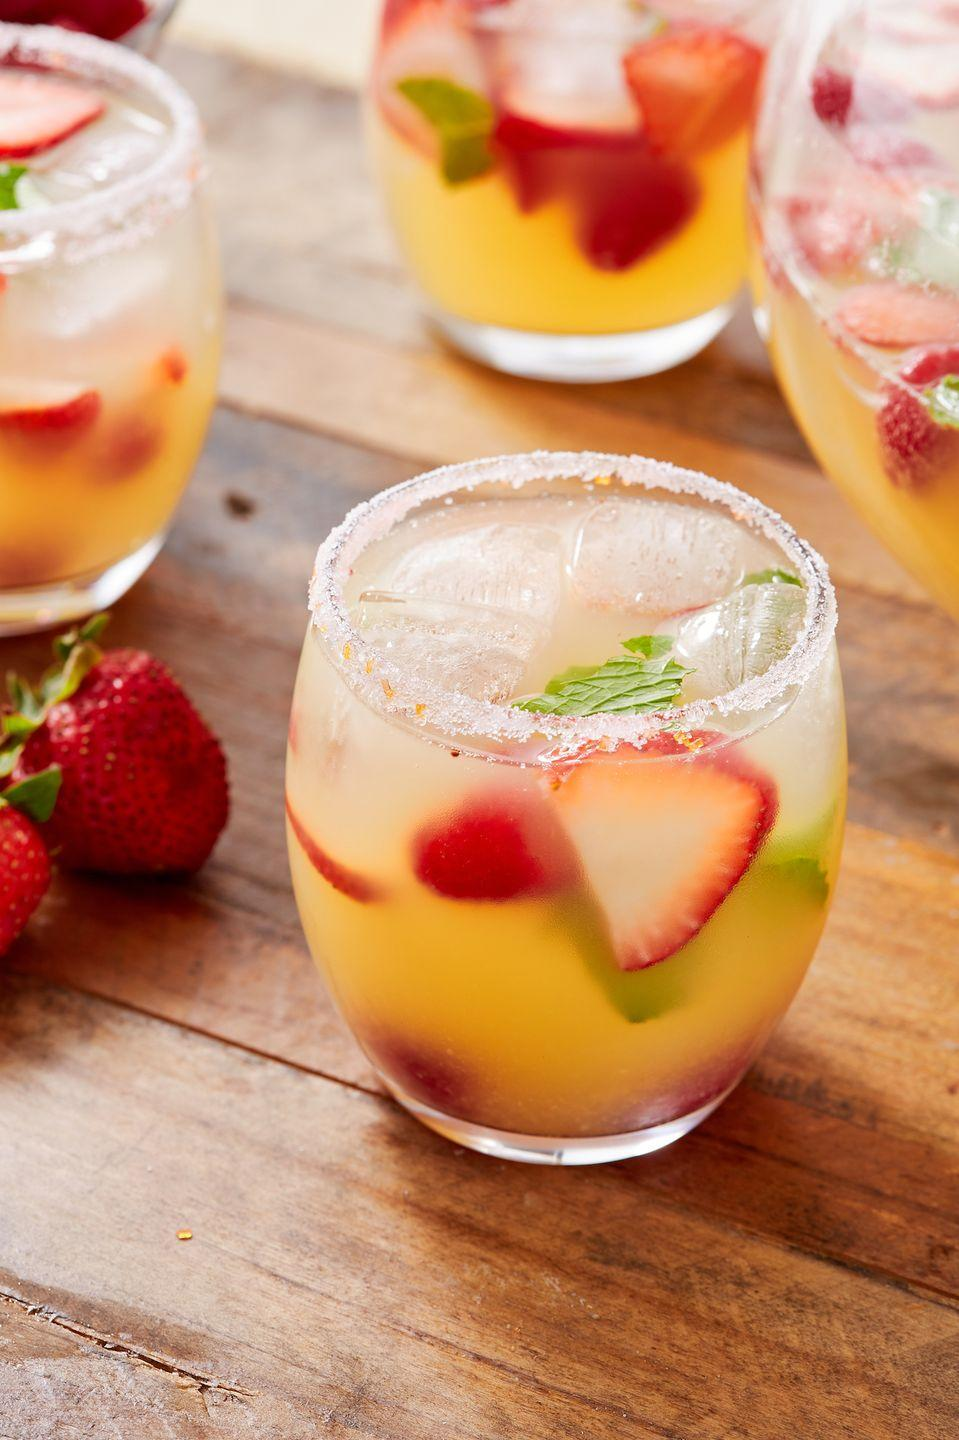 """<p>One big batch = Sunday Funday all day.</p><p>Get the recipe from <a href=""""https://www.delish.com/cooking/recipe-ideas/recipes/a52422/brunch-punch-recipe/"""" rel=""""nofollow noopener"""" target=""""_blank"""" data-ylk=""""slk:Delish"""" class=""""link rapid-noclick-resp"""">Delish</a>.</p>"""